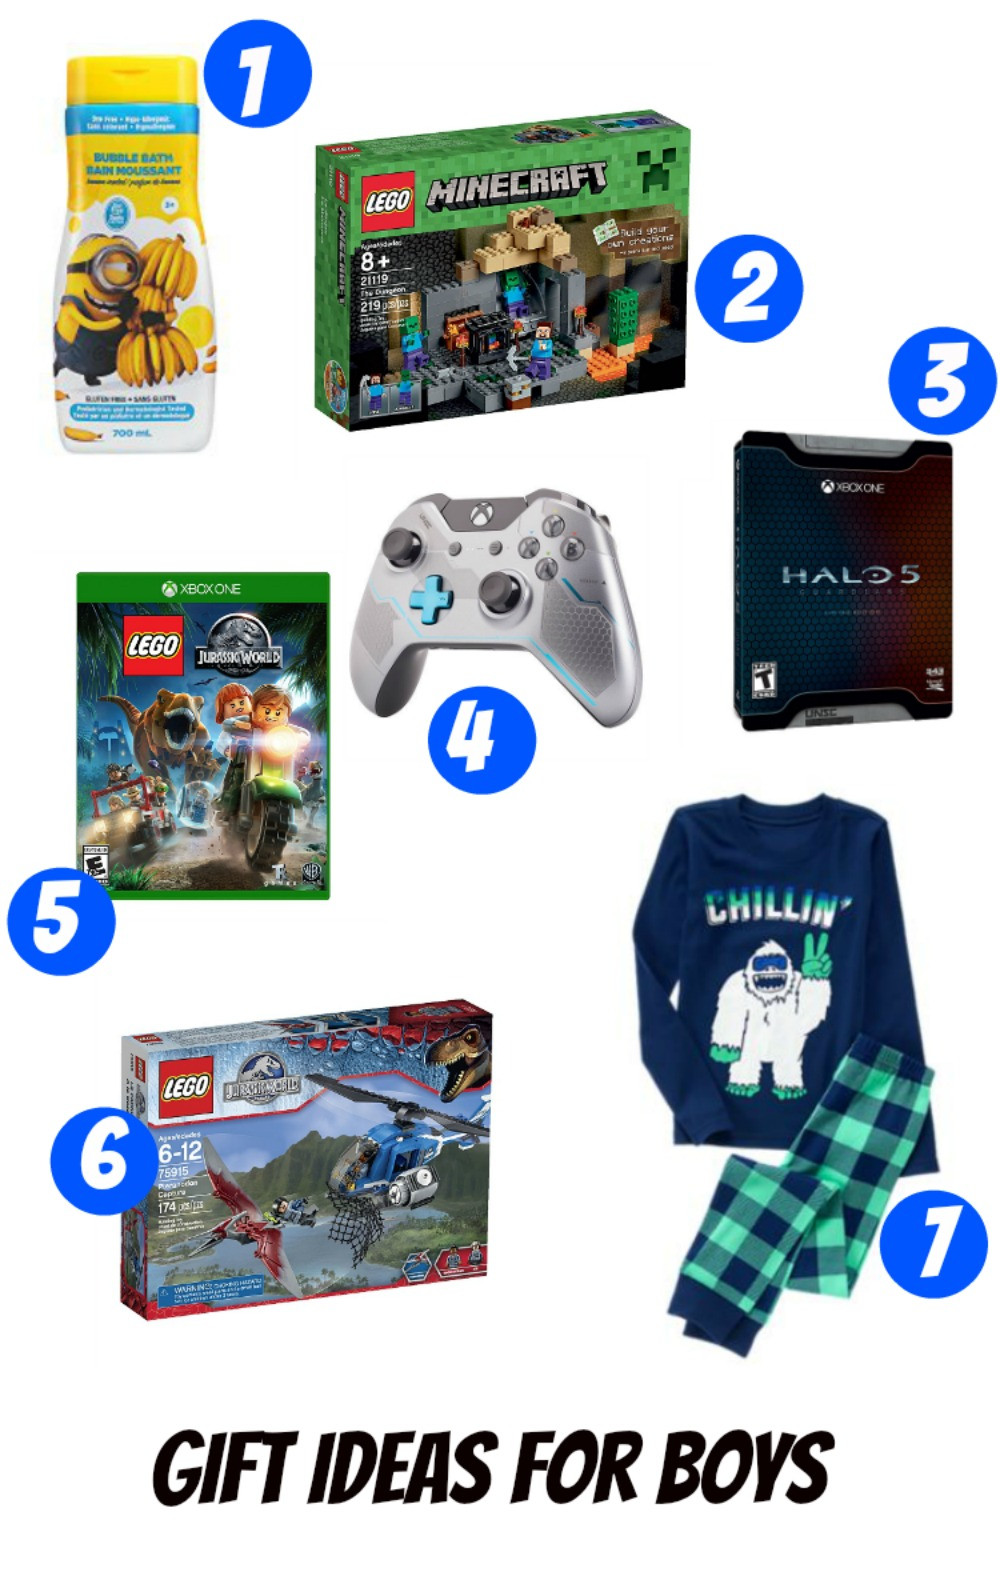 Best ideas about Boys Gift Ideas . Save or Pin Gift Ideas For Boys Now.